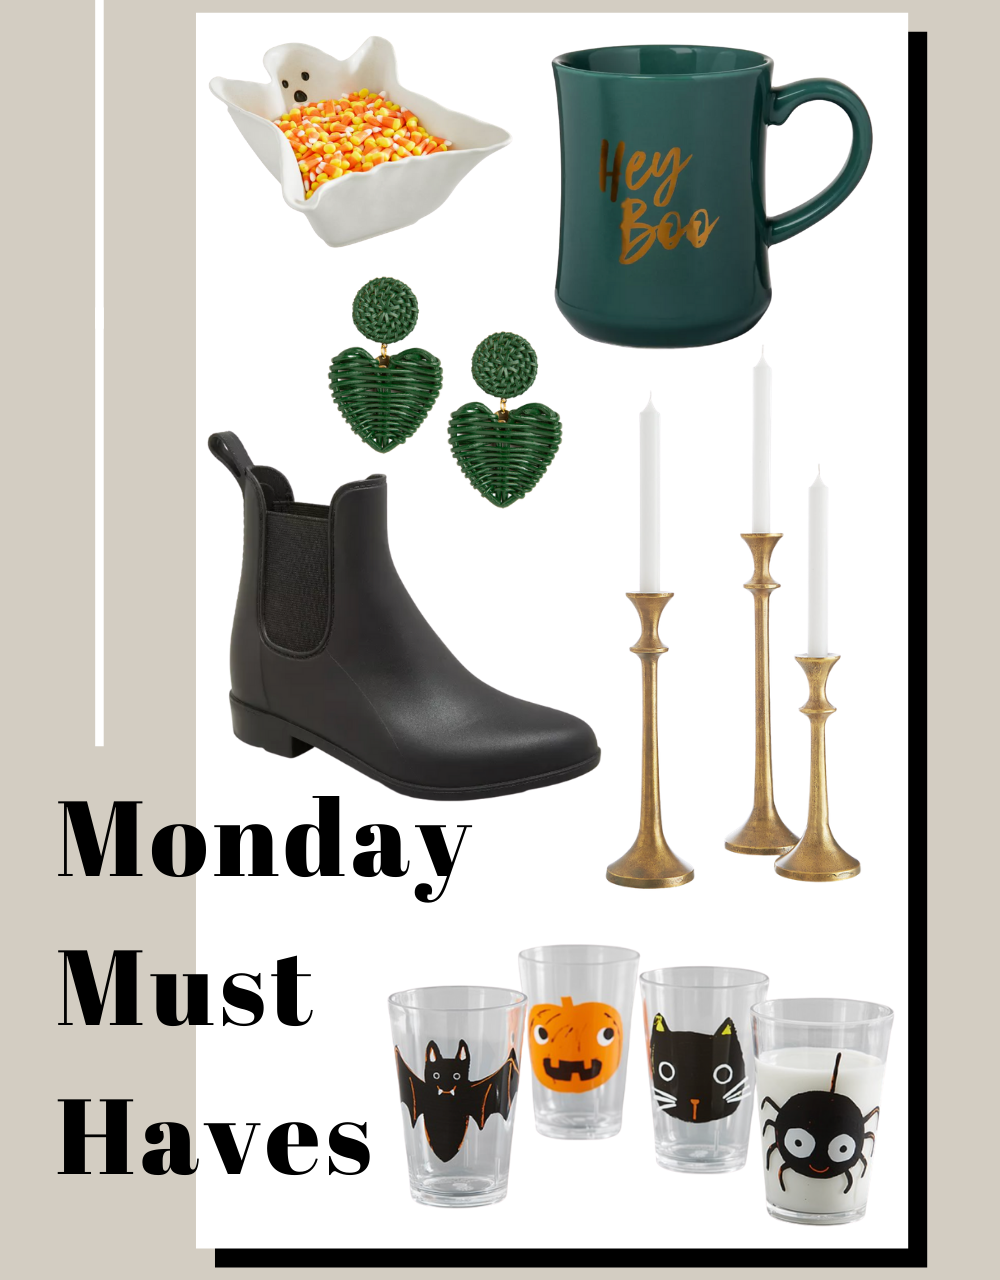 Monday Must Haves: October 5, 2020